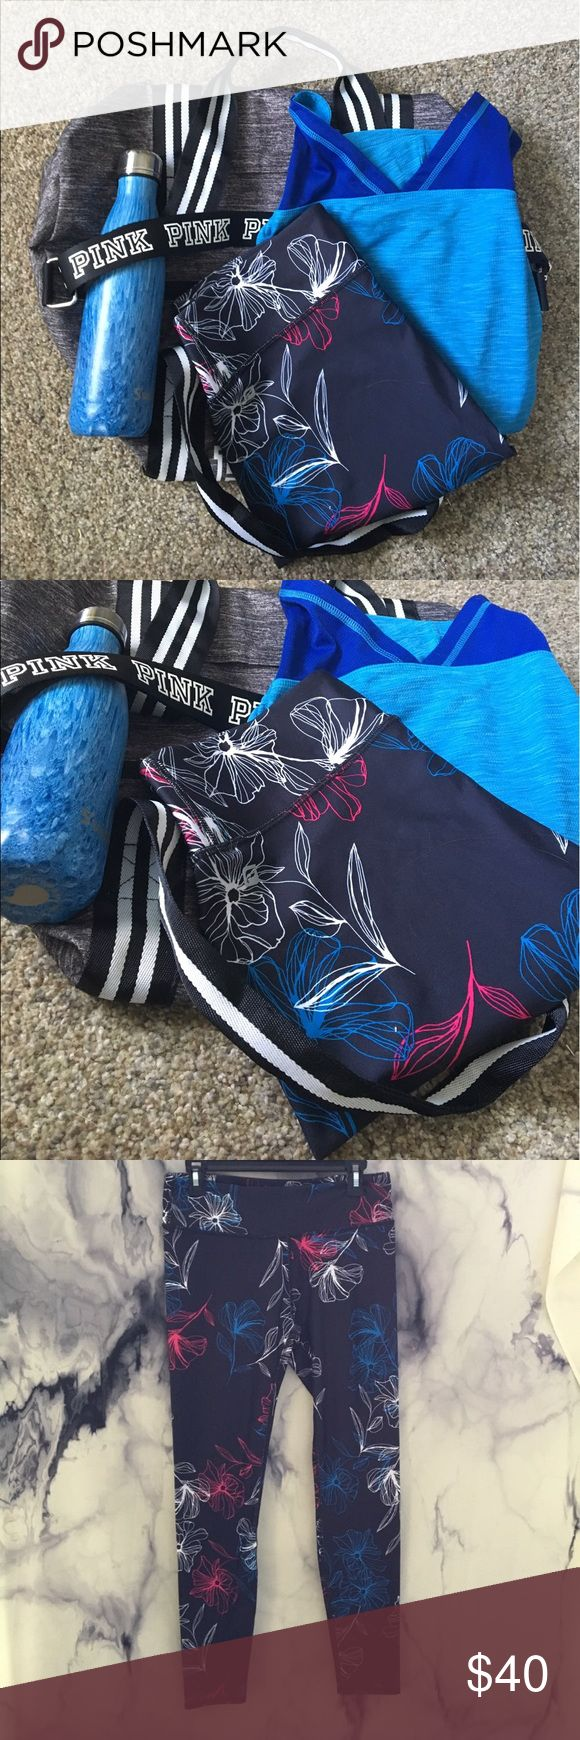 Fabletics NWT high waisted cropped leggings Working out today? These Fabletics red white and blue hardcore cardio workout cropped high waisted leggings would be perfect! Even better matched with an Eddie Bauer basic blue tank top, and drink up with your favorite drink in this 16oz blue wood Swell. Pack all your items together in this Victoria Secret duffle gym bag! ☀️☀️☀️ size medium/ large Fabletics Pants Leggings